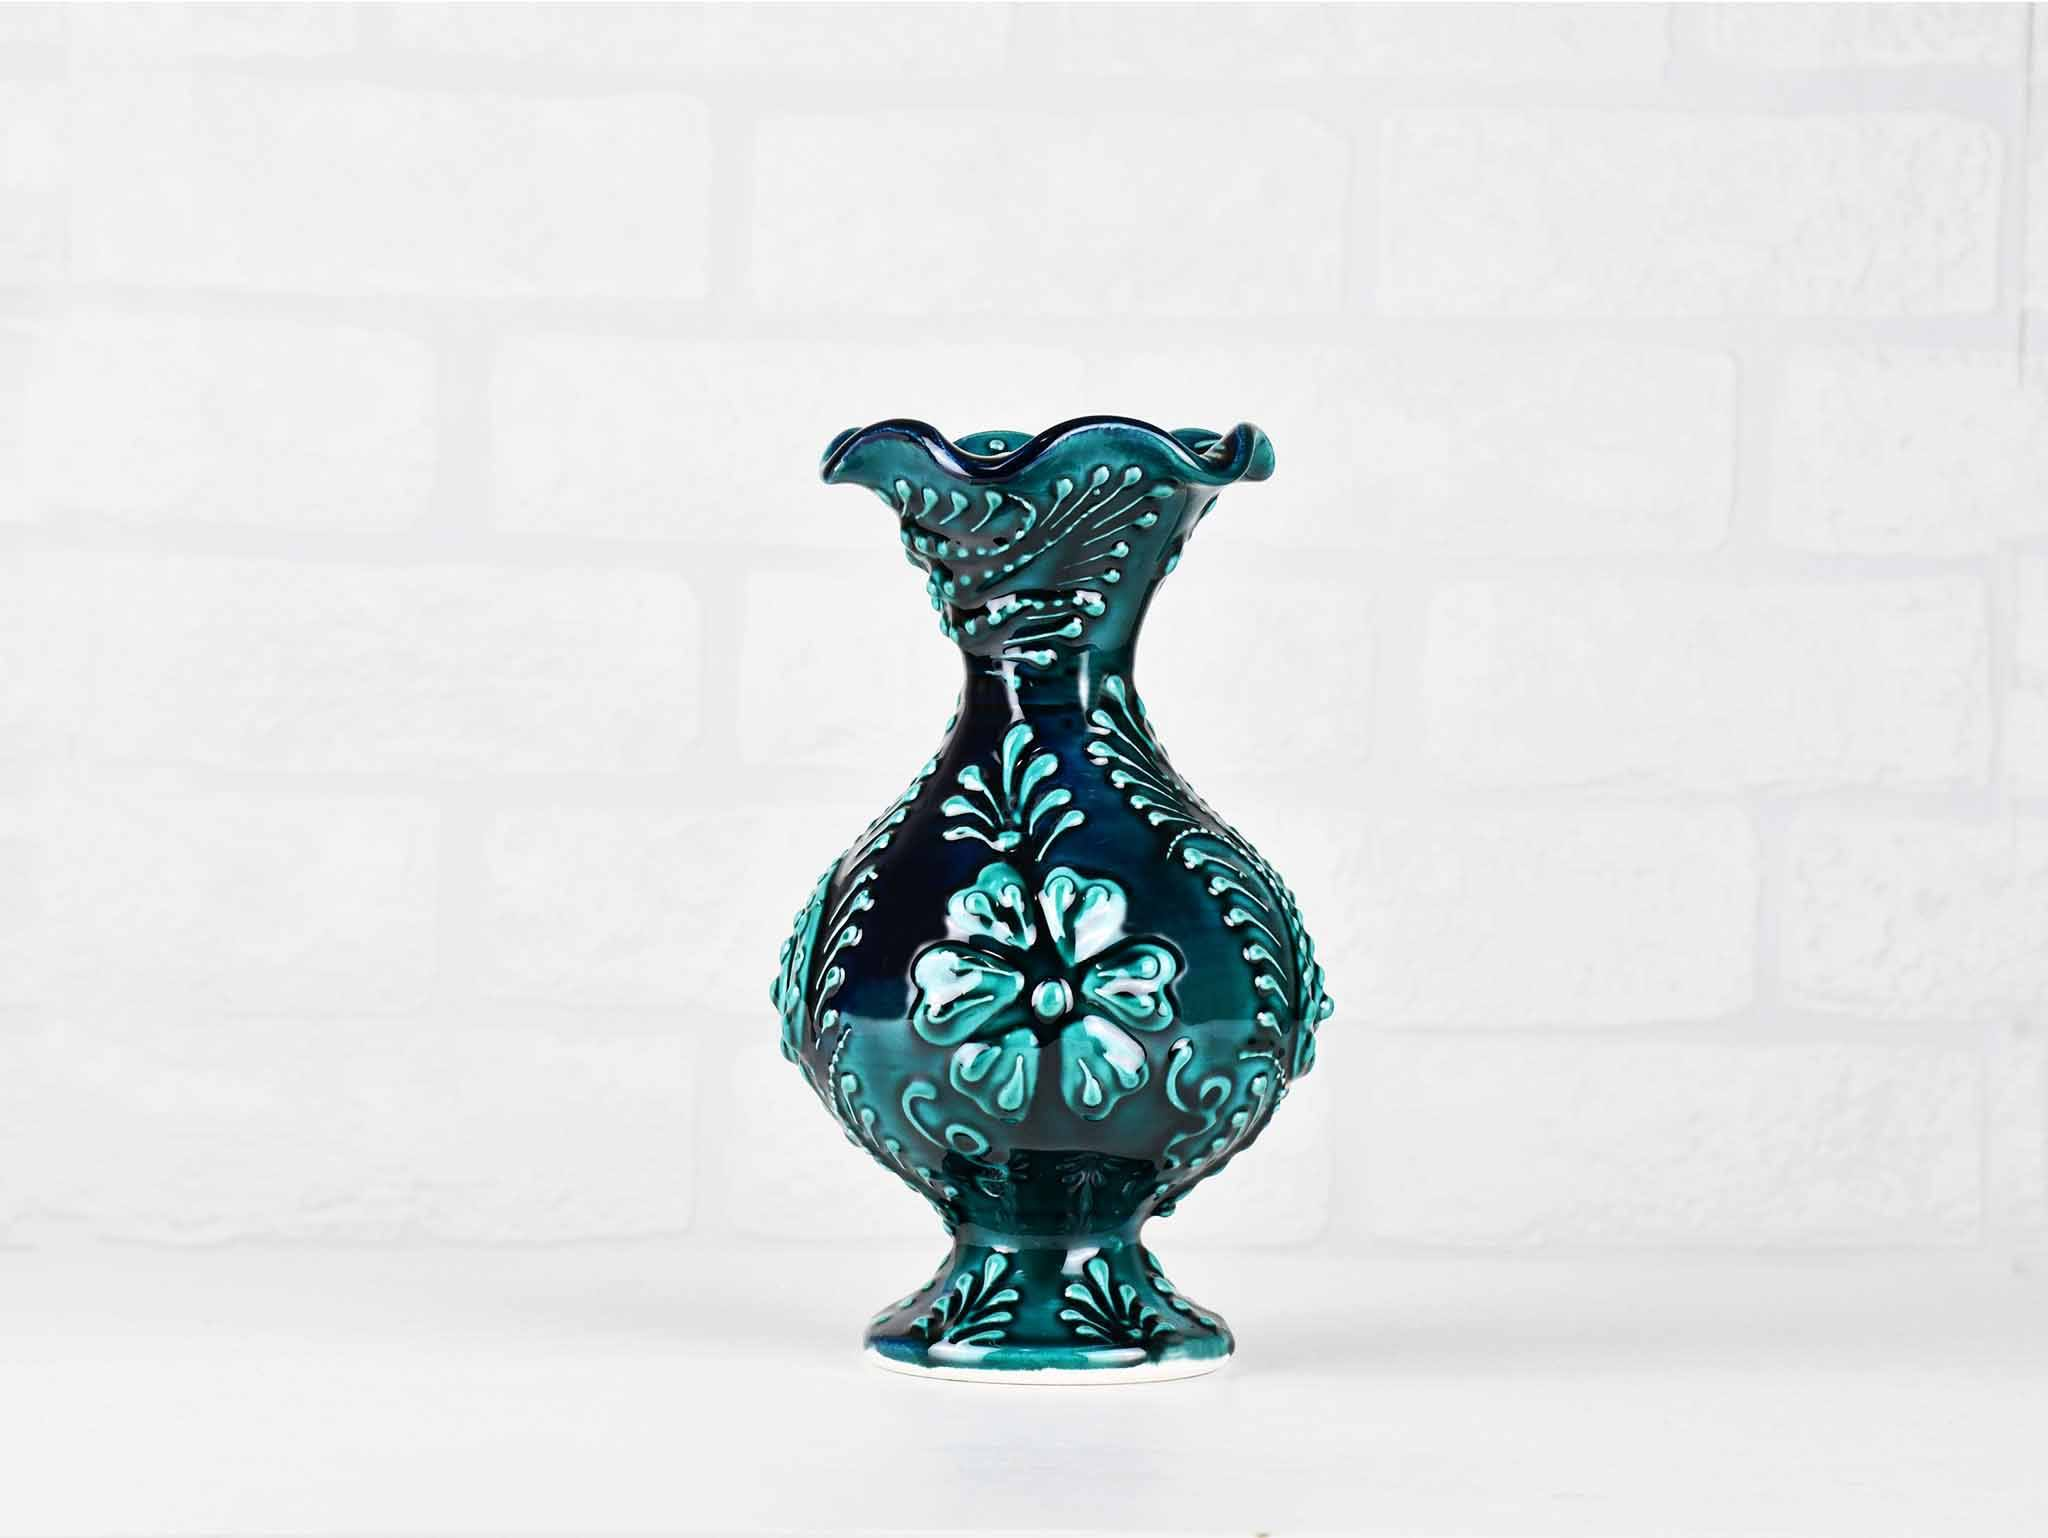 Turkish Ceramic Firuze Vase 15 Cm Green New Collection Australia Sydney Grand Bazaar